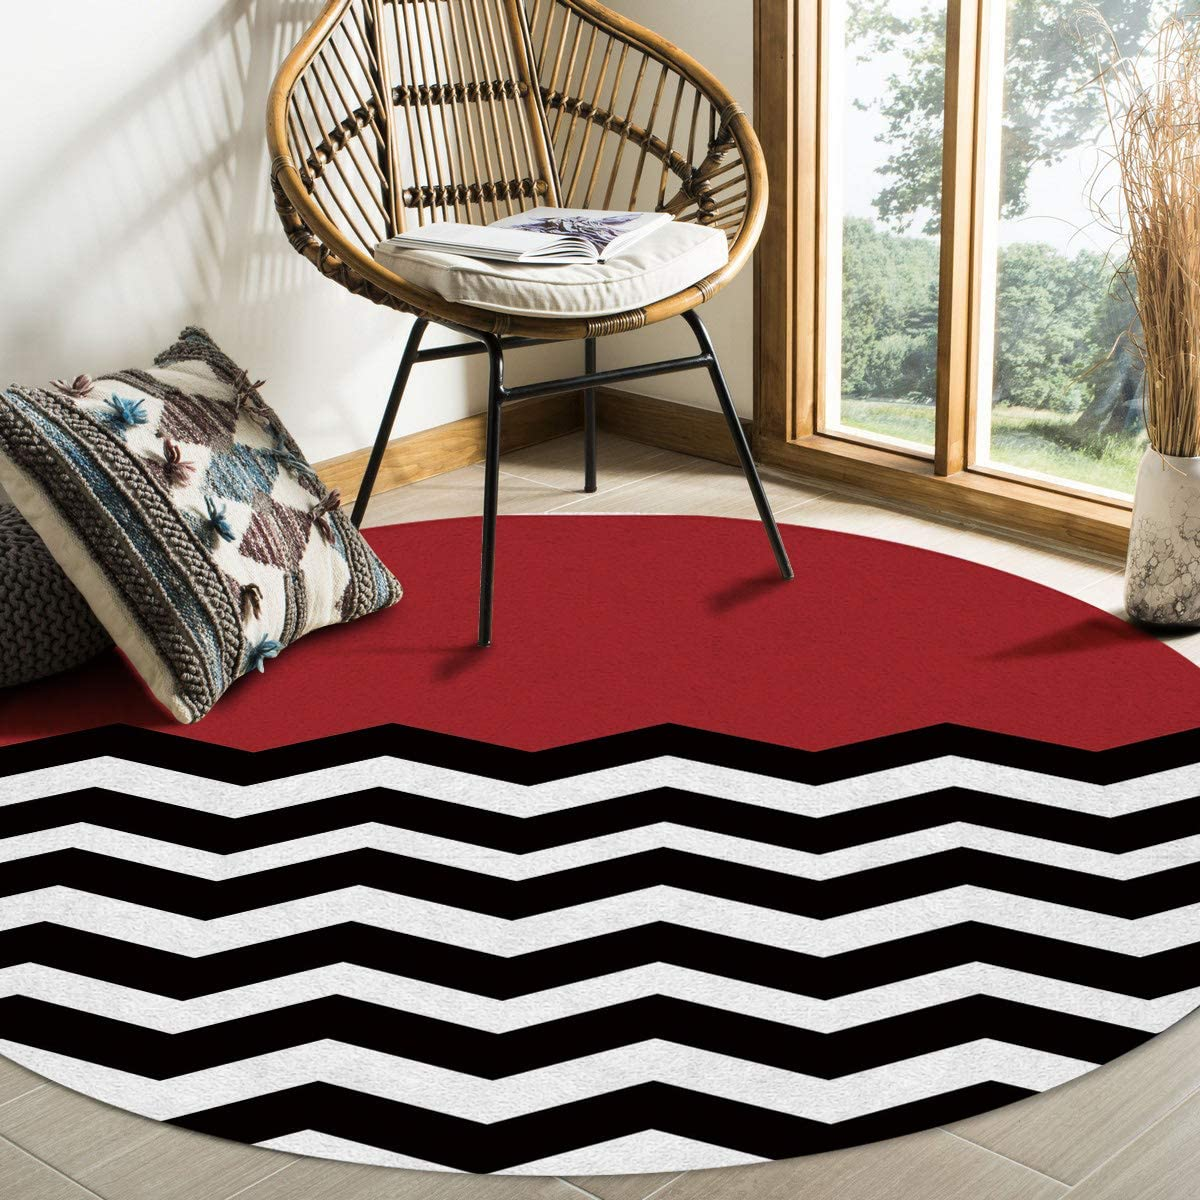 Libaoge Round Area Rugs 6 ft Black Diameter In White Red Chevron Max 84% OFF Spring new work one after another